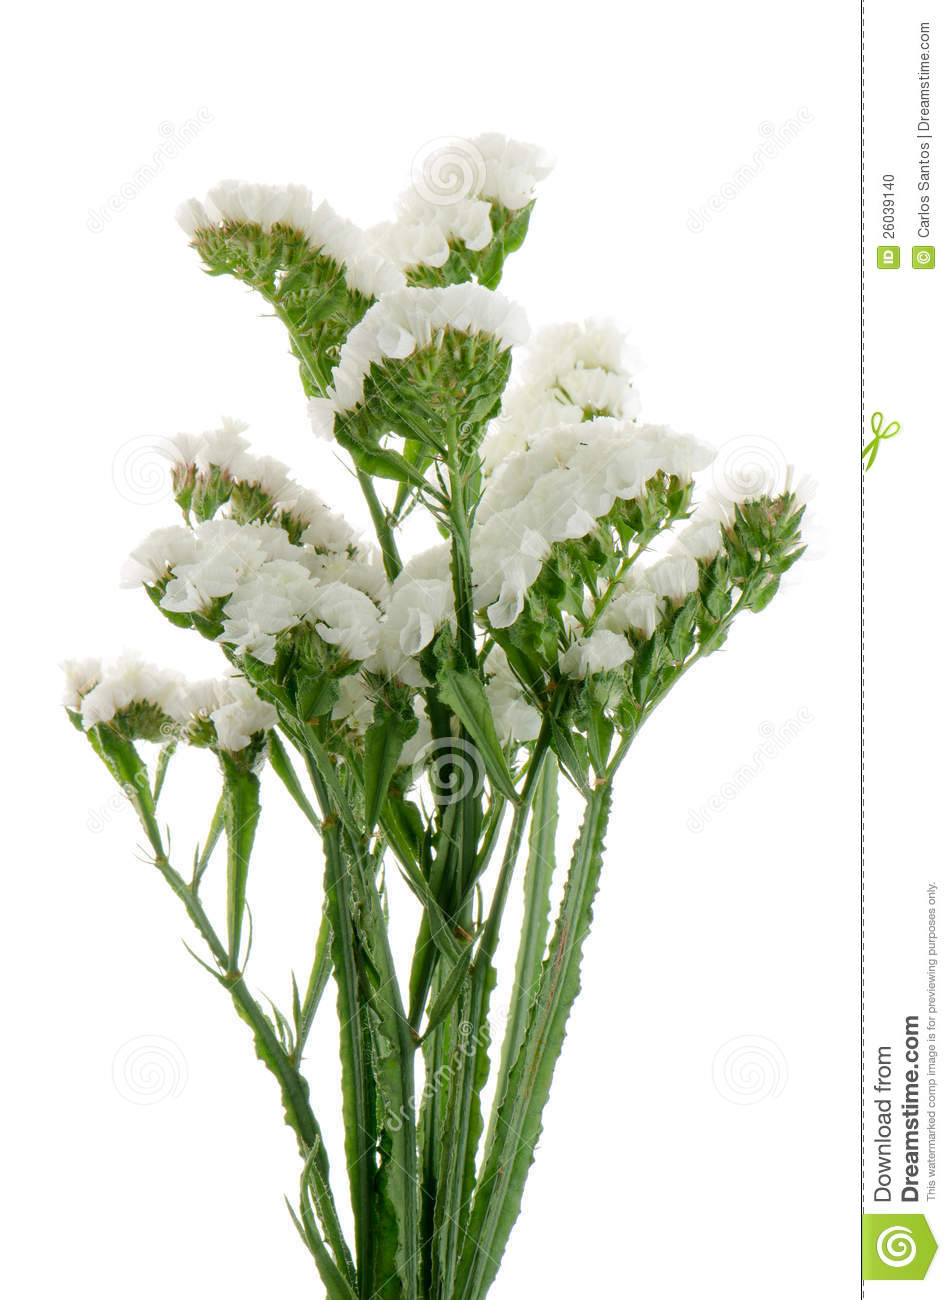 statice flowers pictures  flower, Natural flower